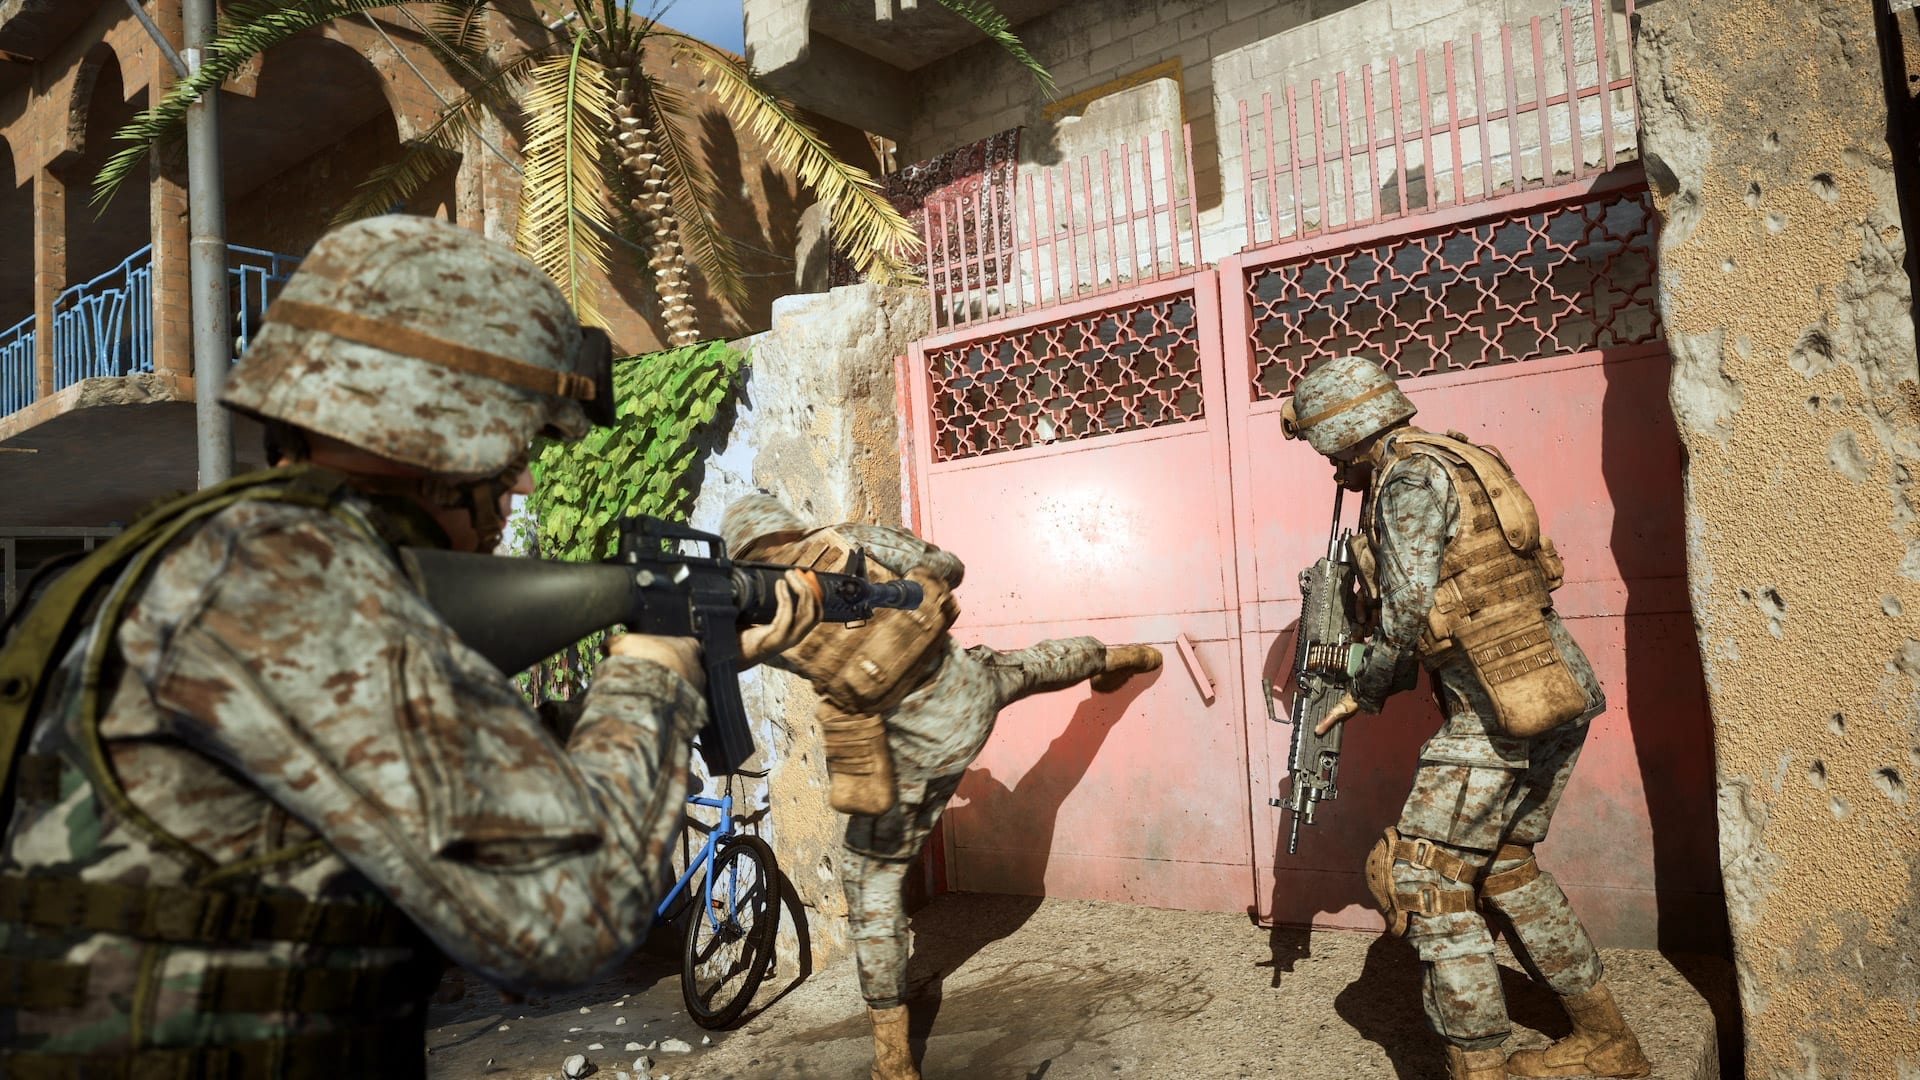 Muslim Advocacy Group Asks Digital Storefronts To Ban Six Days In Fallujah